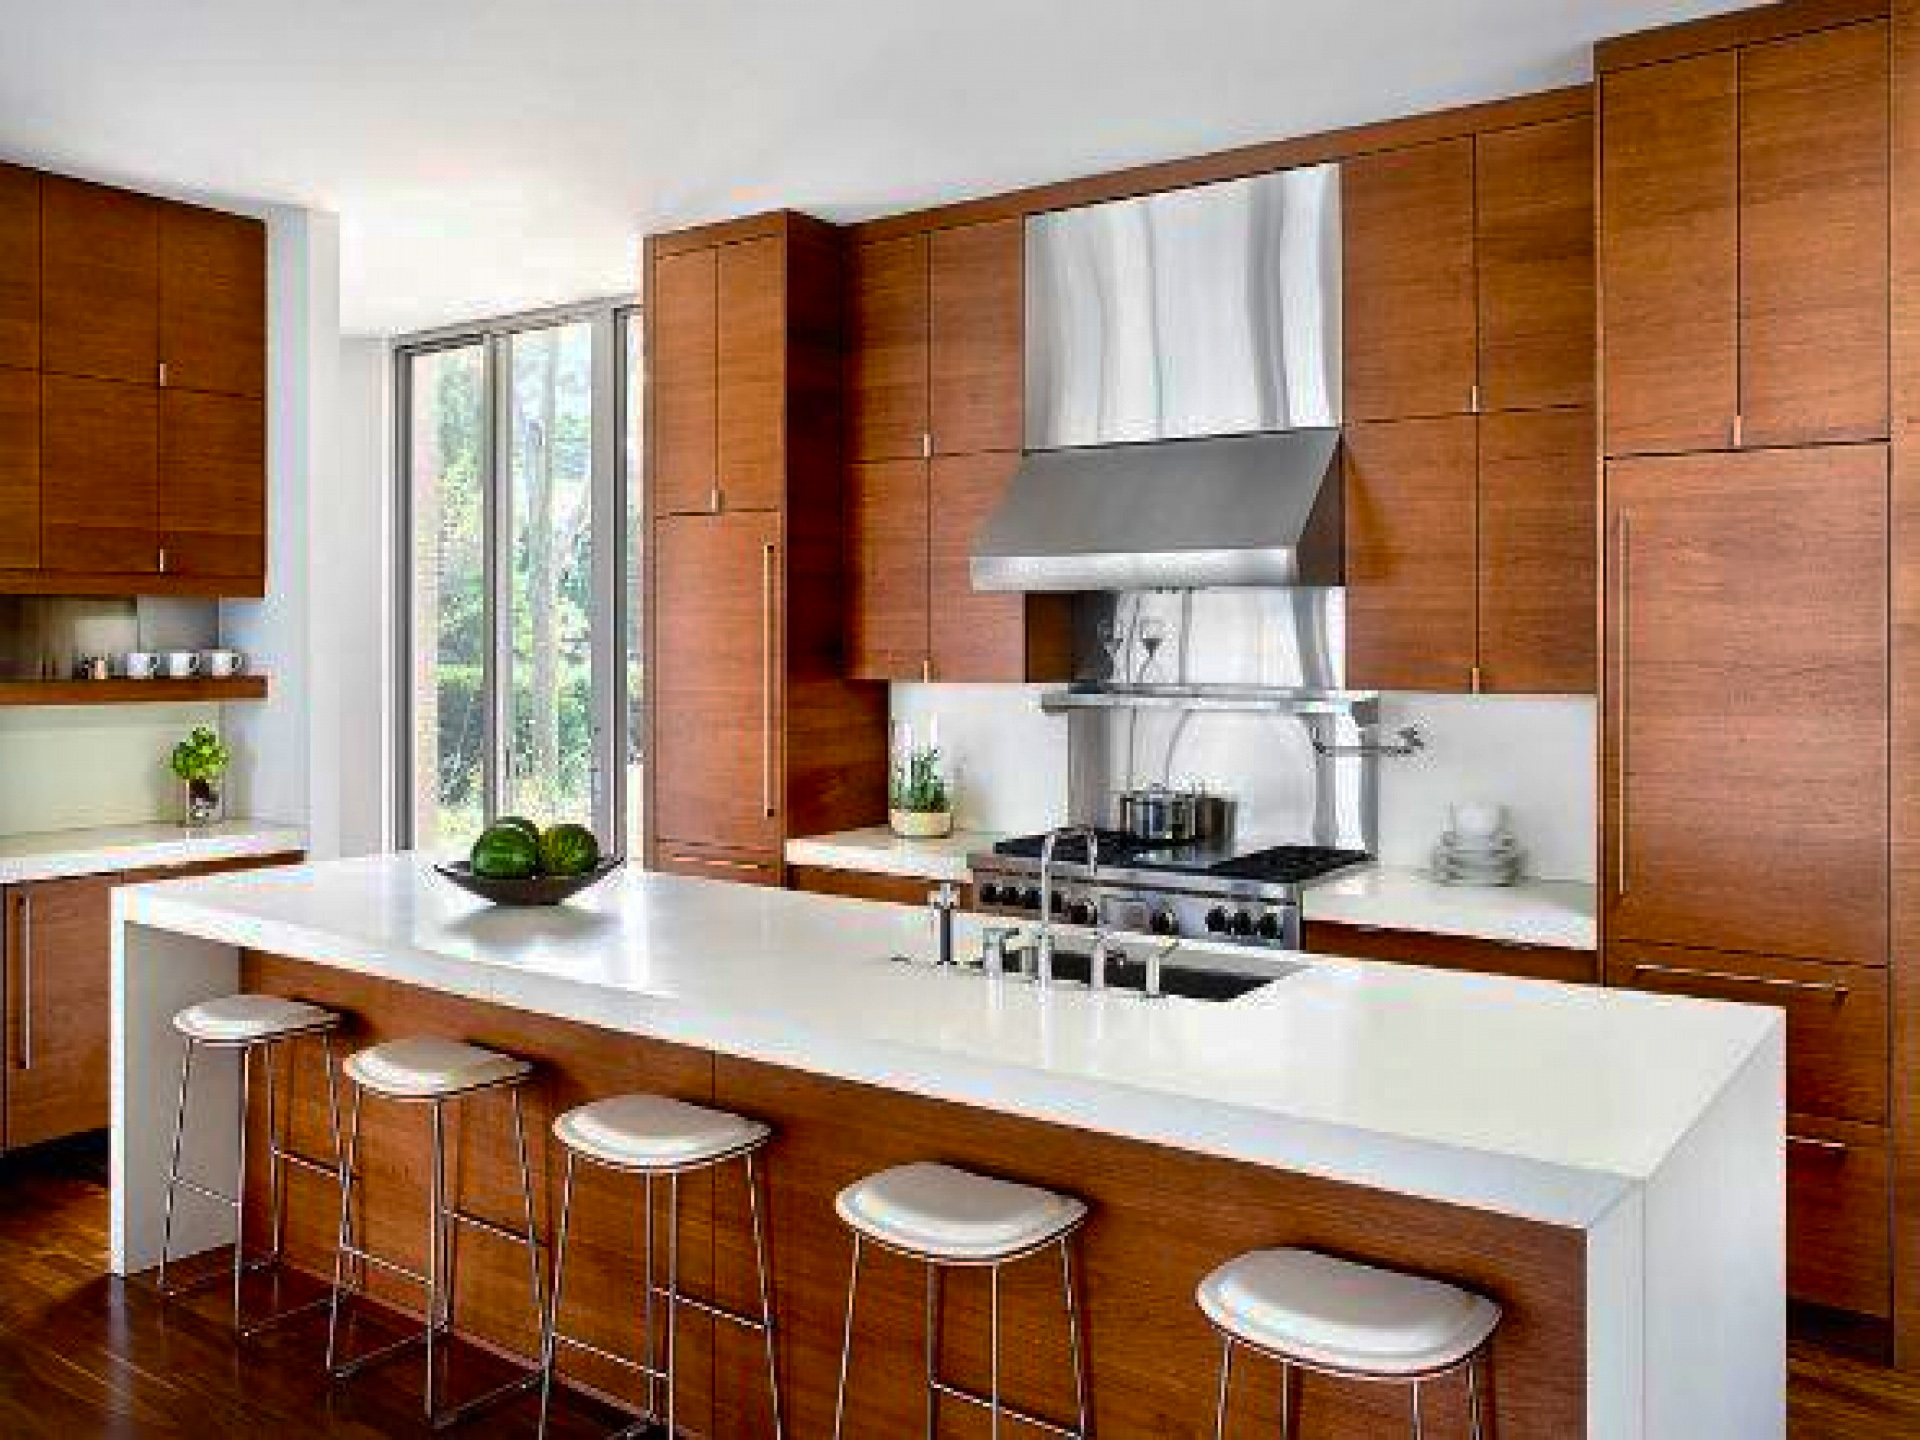 contemporary-kitchen-cabinets-remodel-design-ideas-for-oak-wood-kitchen-cabinets-for-new-kitchen-cabinets-remodel